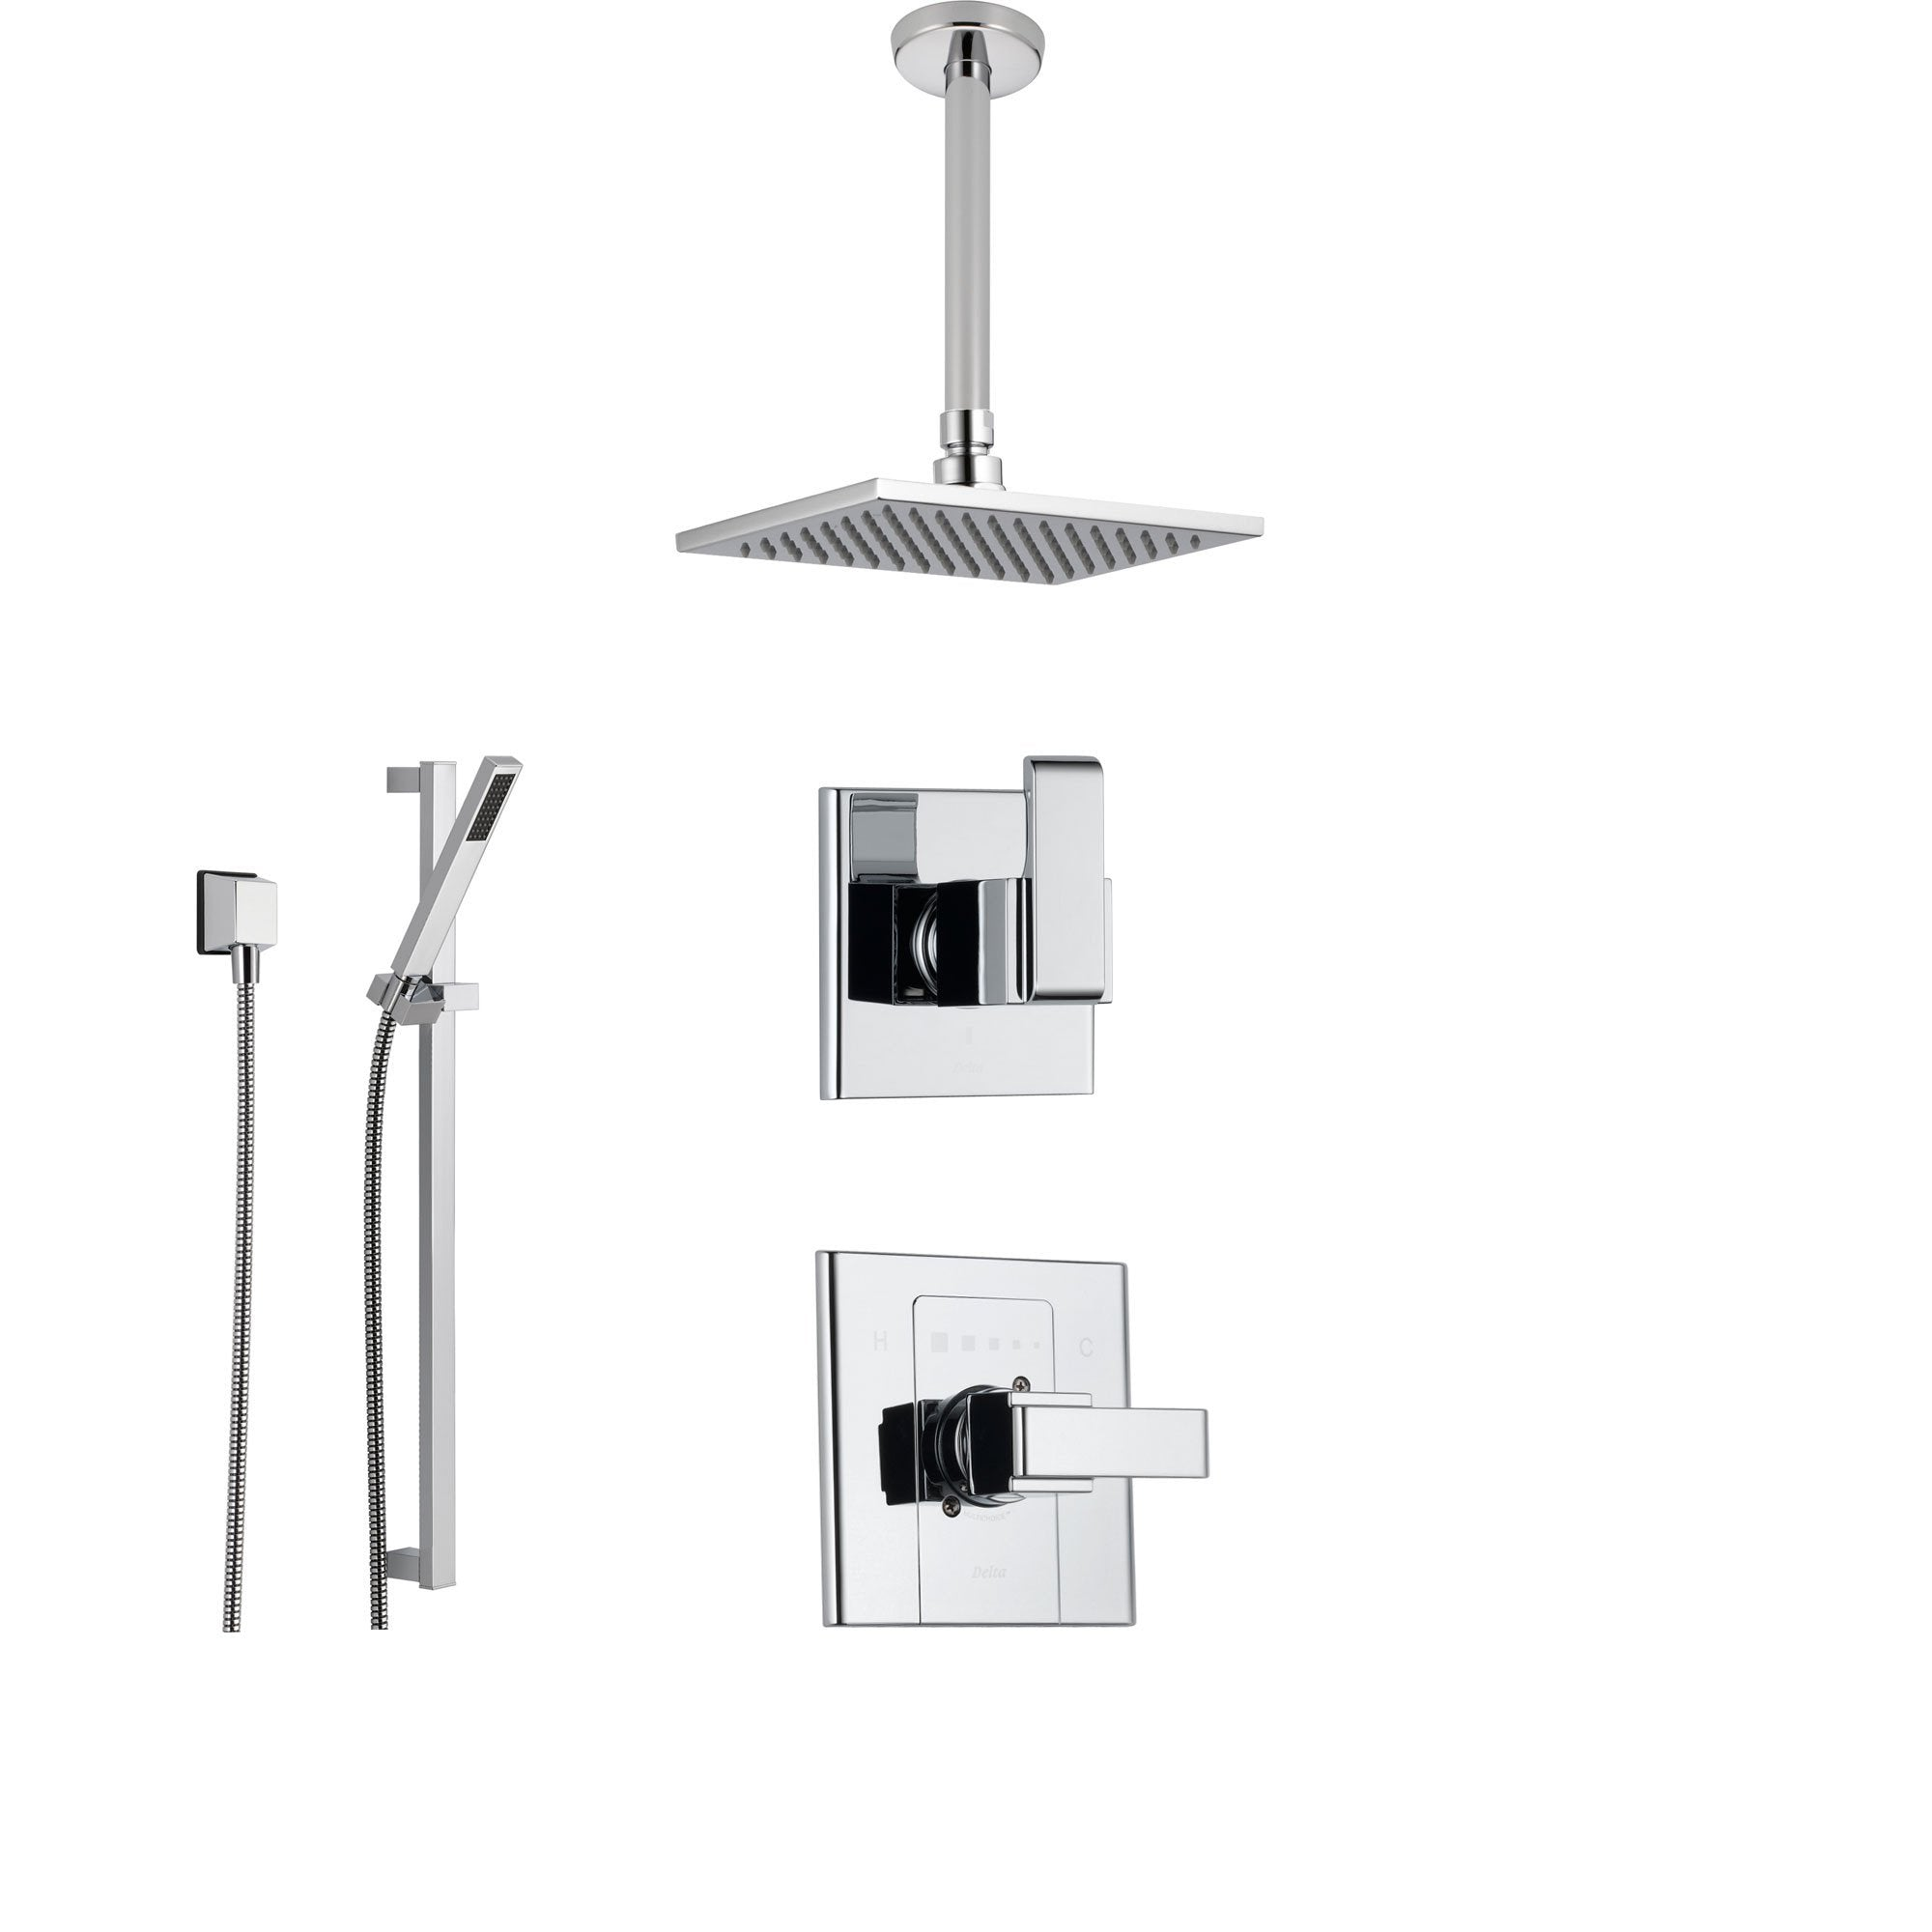 Delta Arzo Chrome Shower System with Normal Shower Handle, 3-setting Diverter, Large Square Rain Showerhead, and Hand Held Shower SS148681